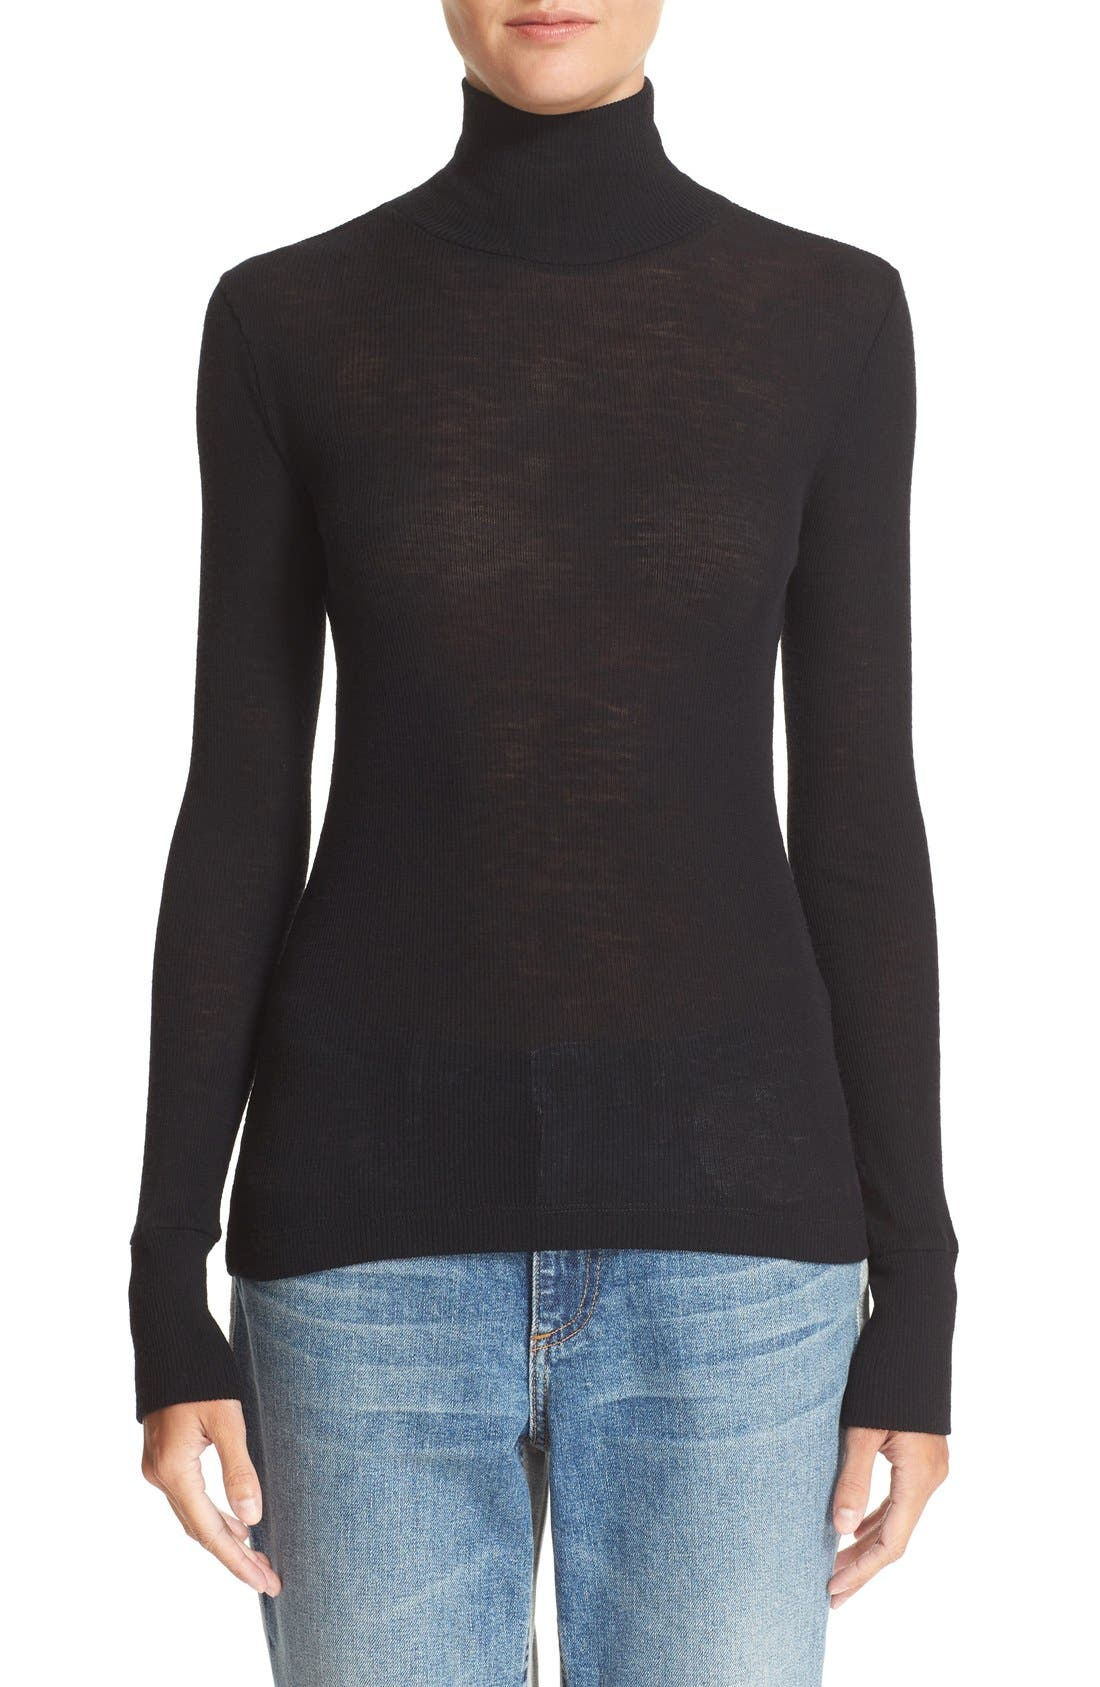 Alternate Image 1 Selected - T by Alexander Wang Sheer Wool Turtleneck